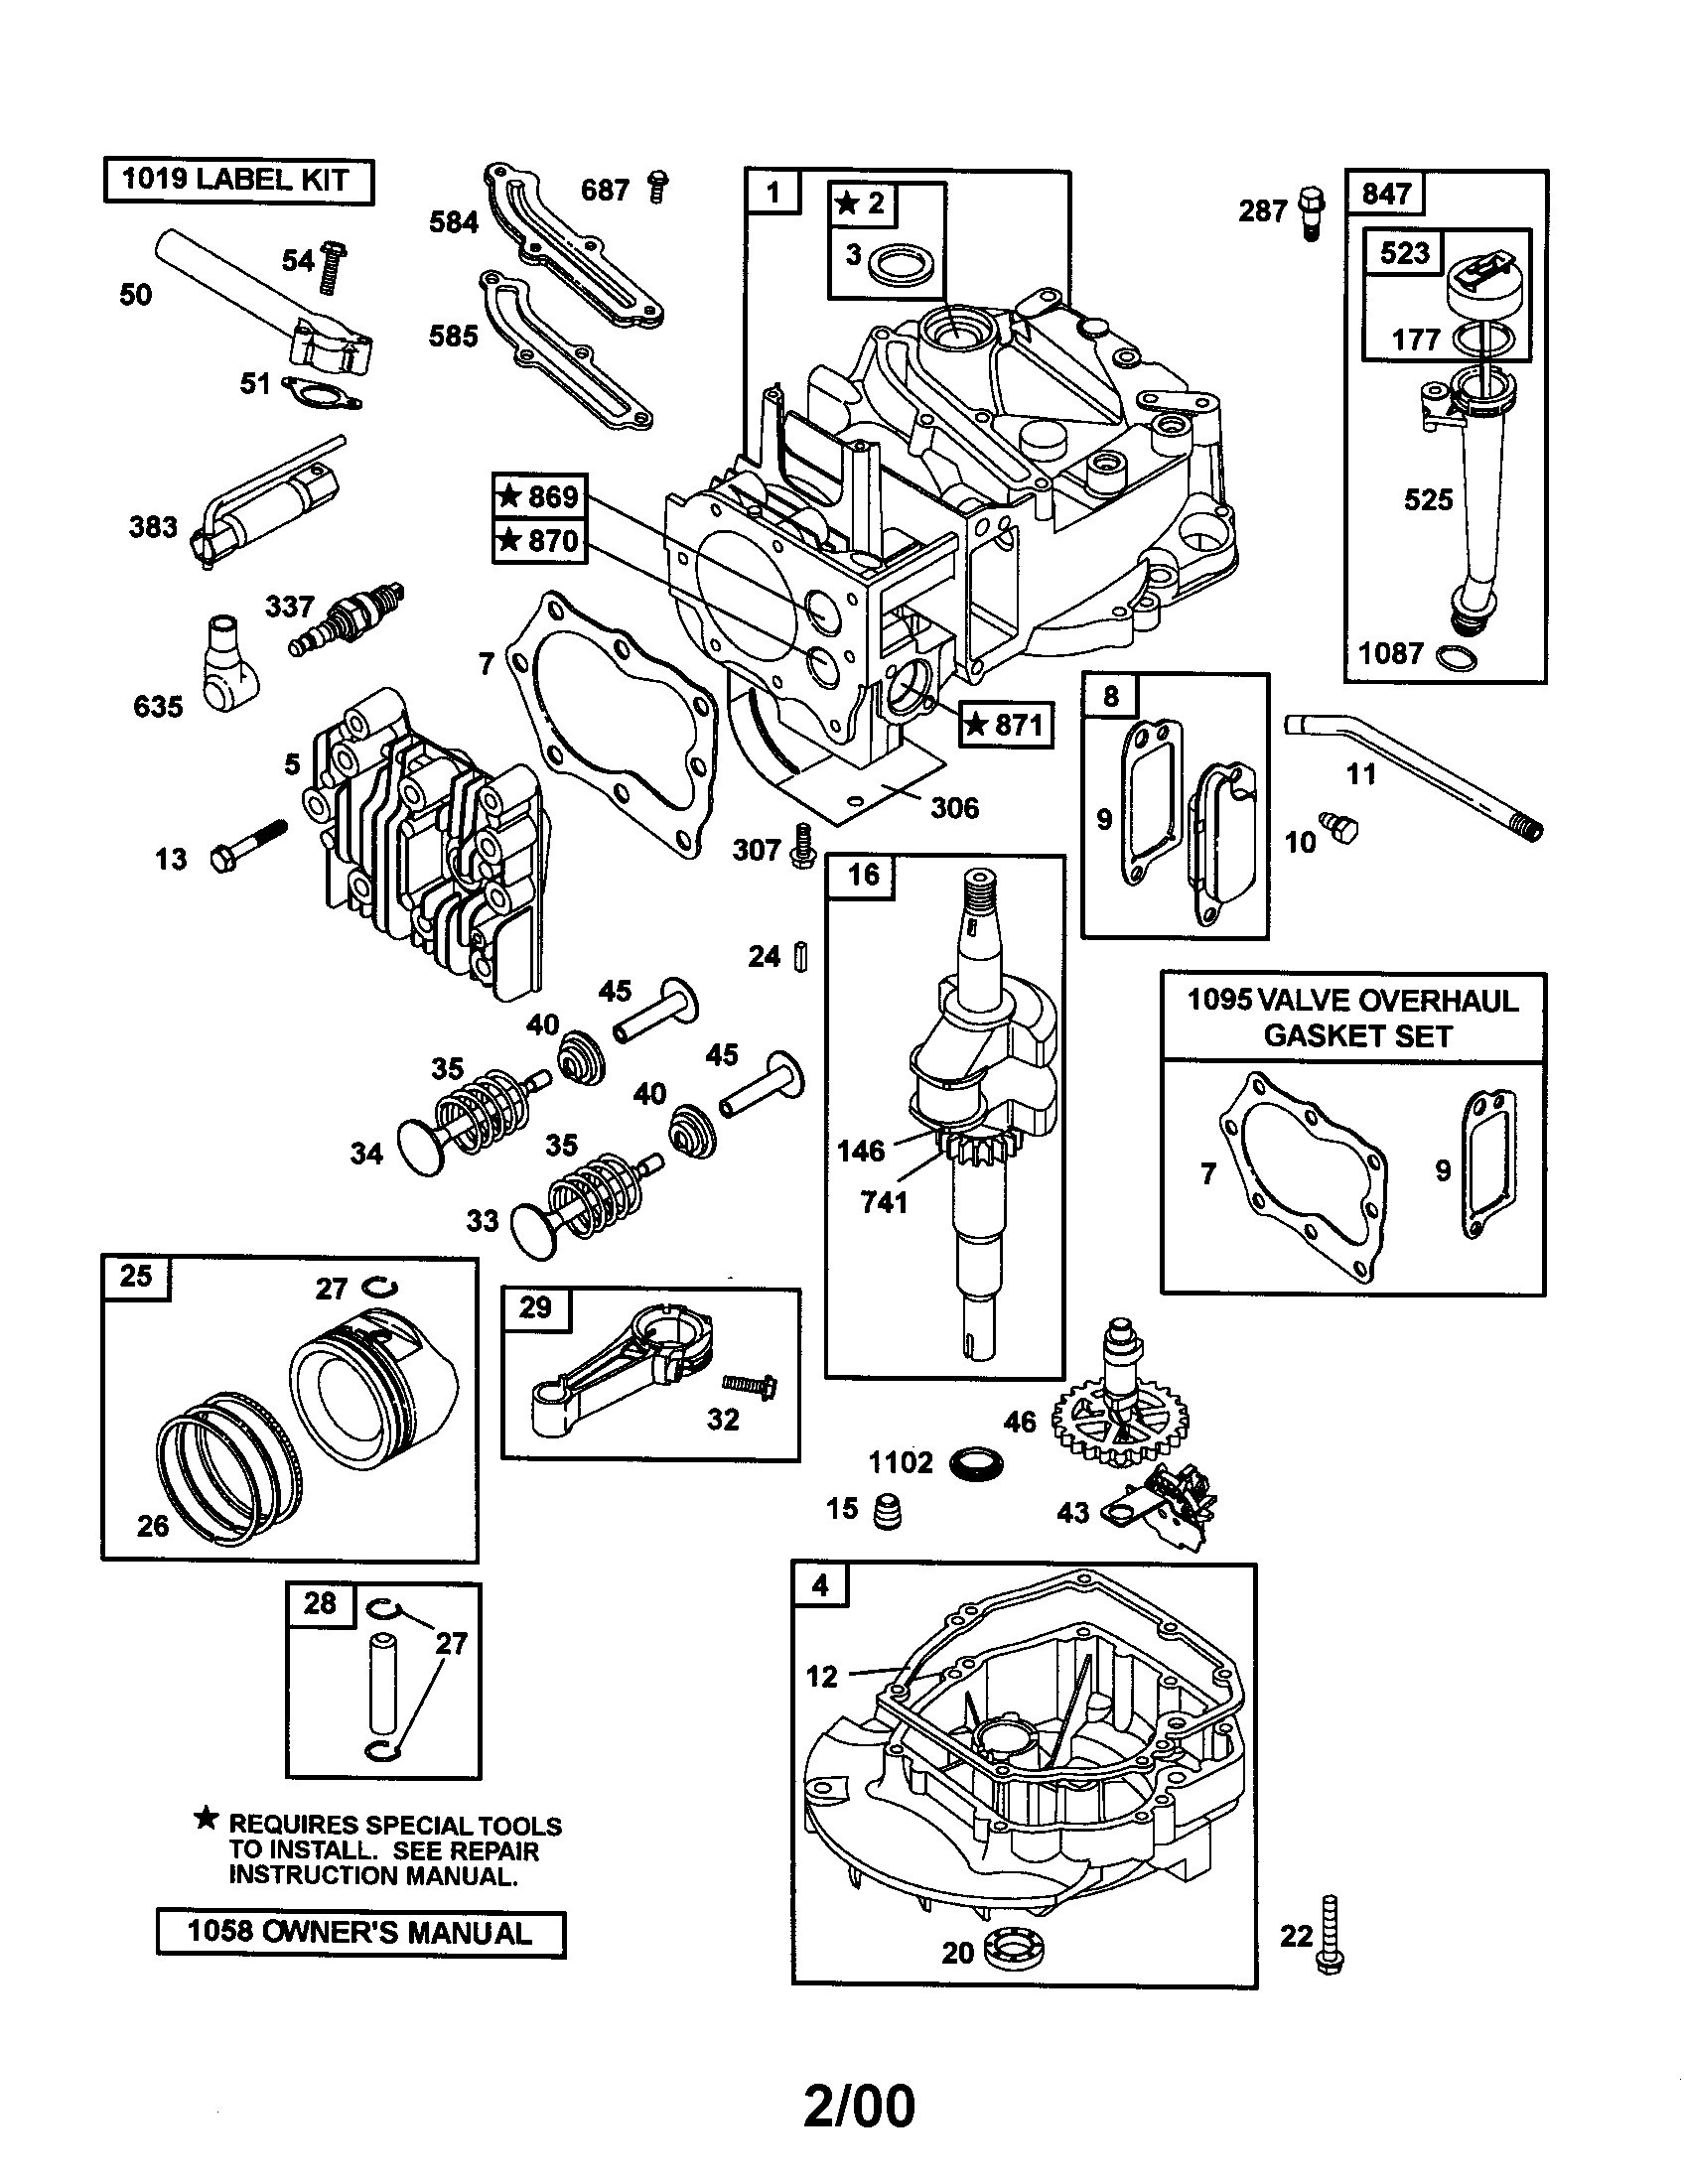 faq engine schematic wiring diagram briggs stratton online